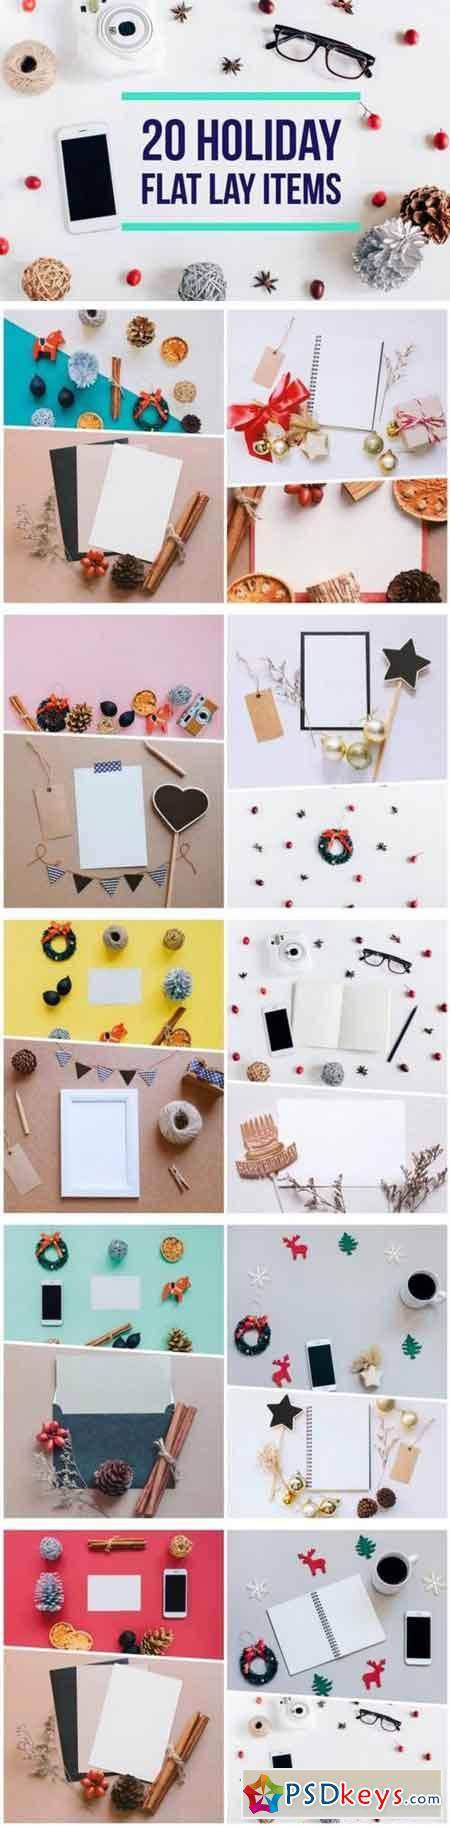 20 Holiday flat lay items collection 1064149